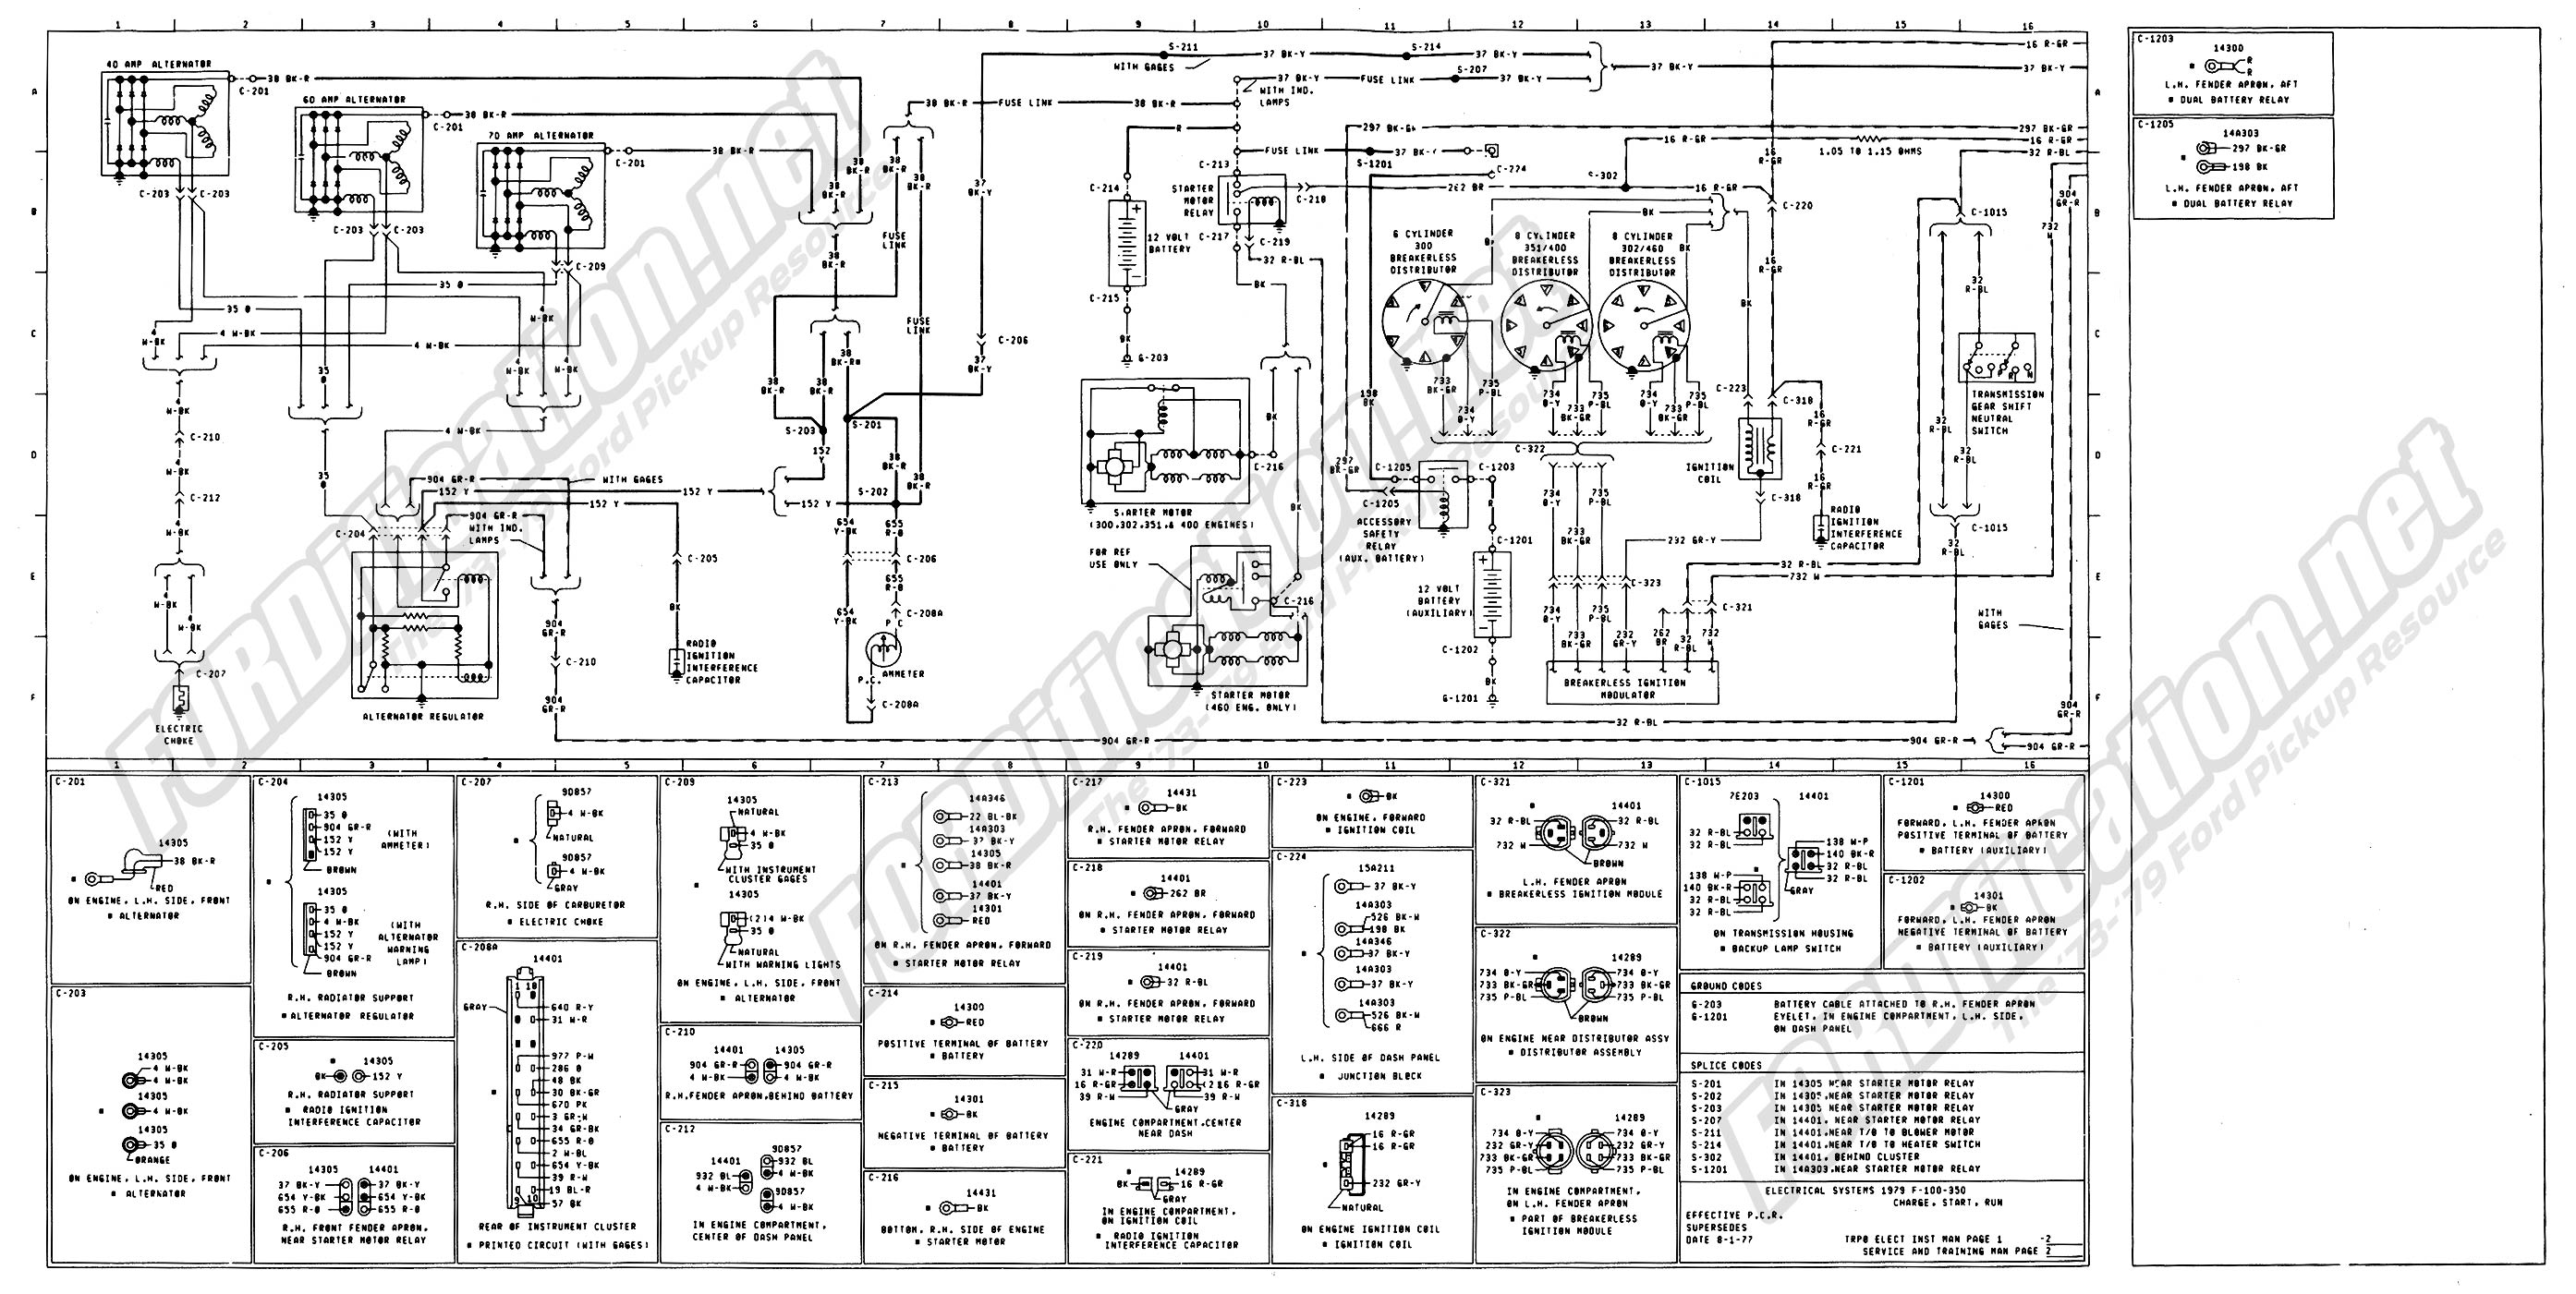 1979 c10 wiring diagram 1979 f350 wiring diagram 1973-1979 ford truck wiring diagrams & schematics ... #2